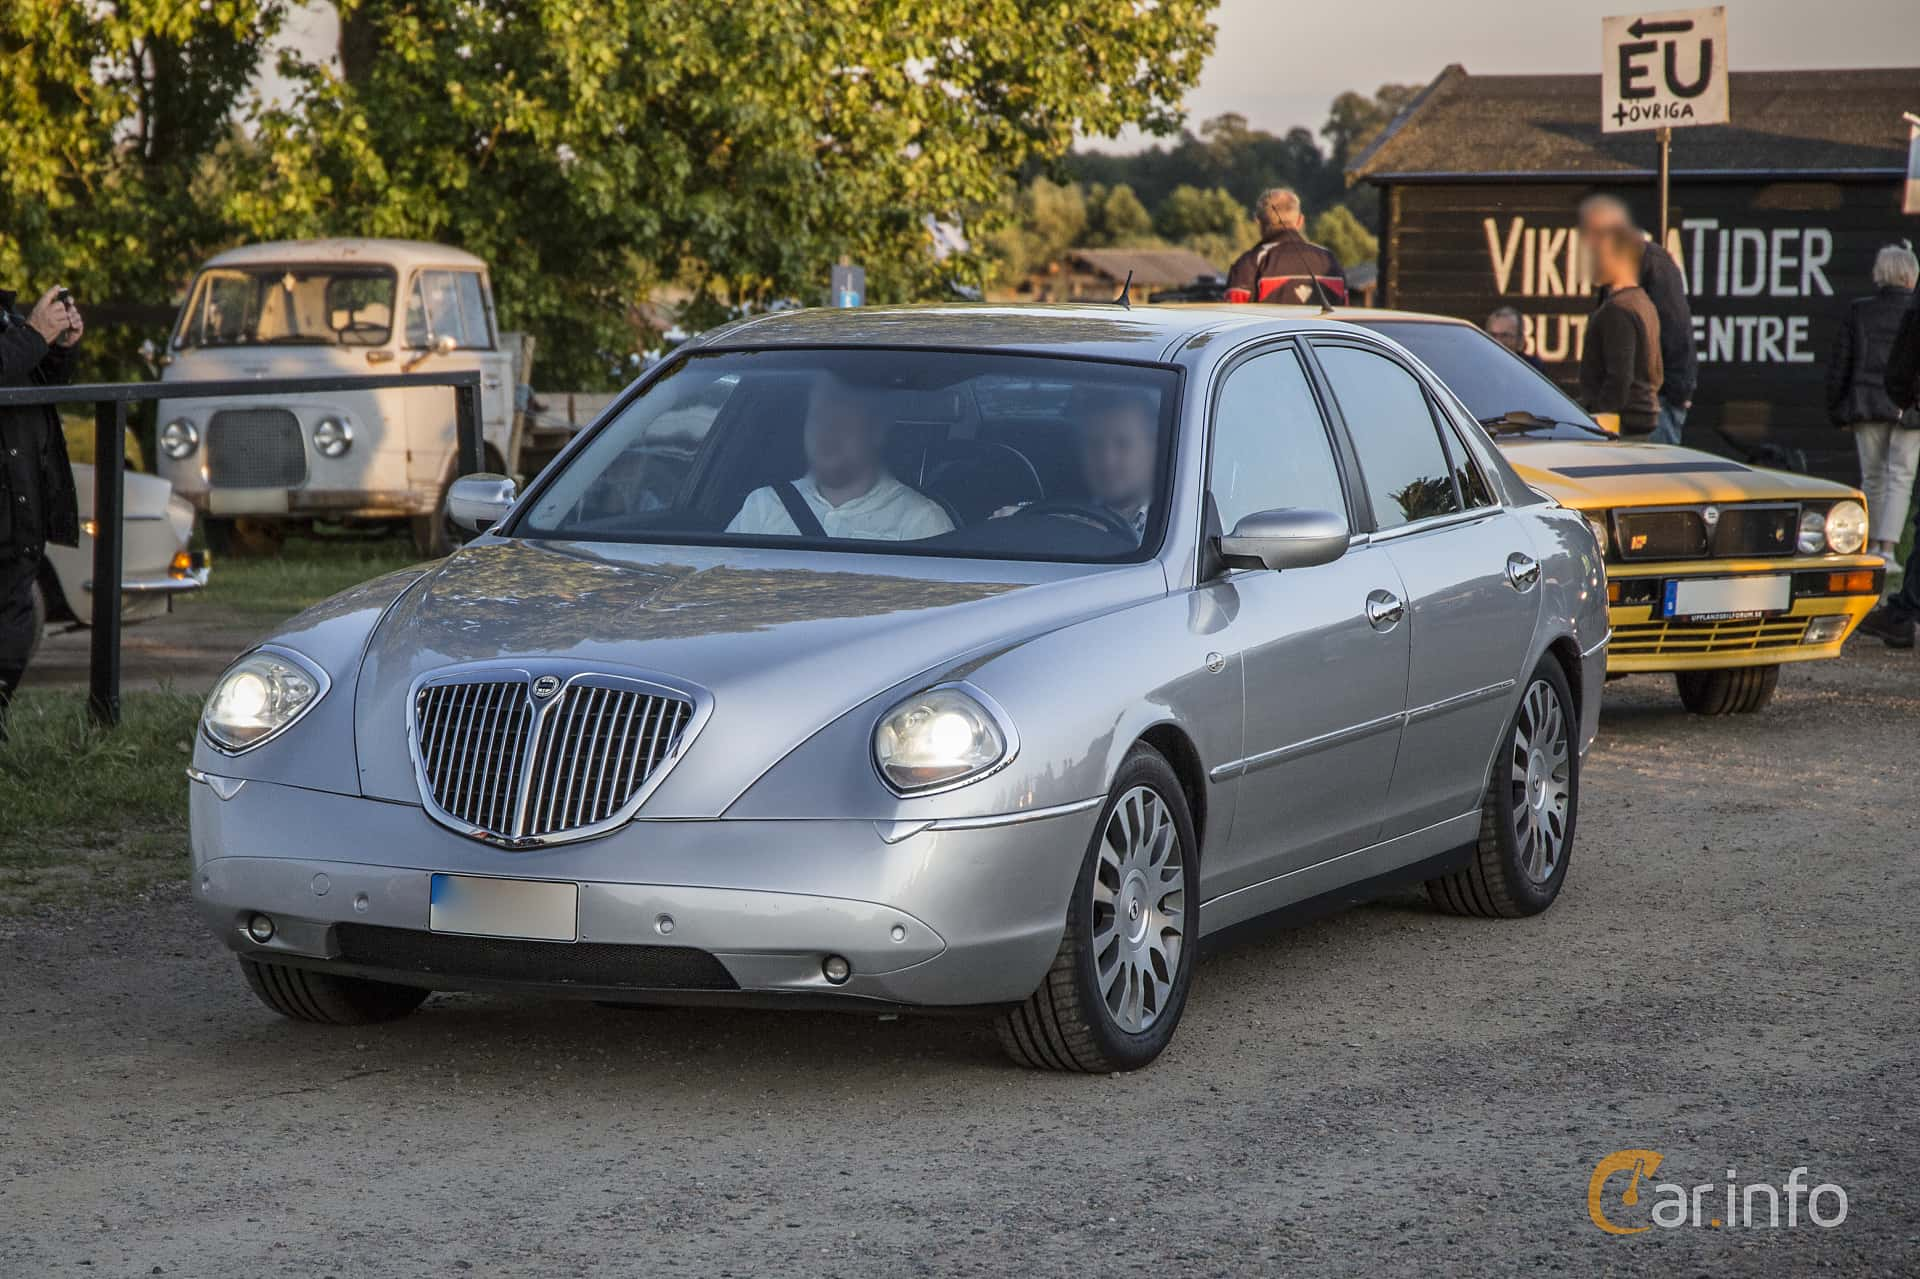 1 images of Lancia Thesis 3.2 V6 Comfotronic, 230hp, 2004 by Pelle